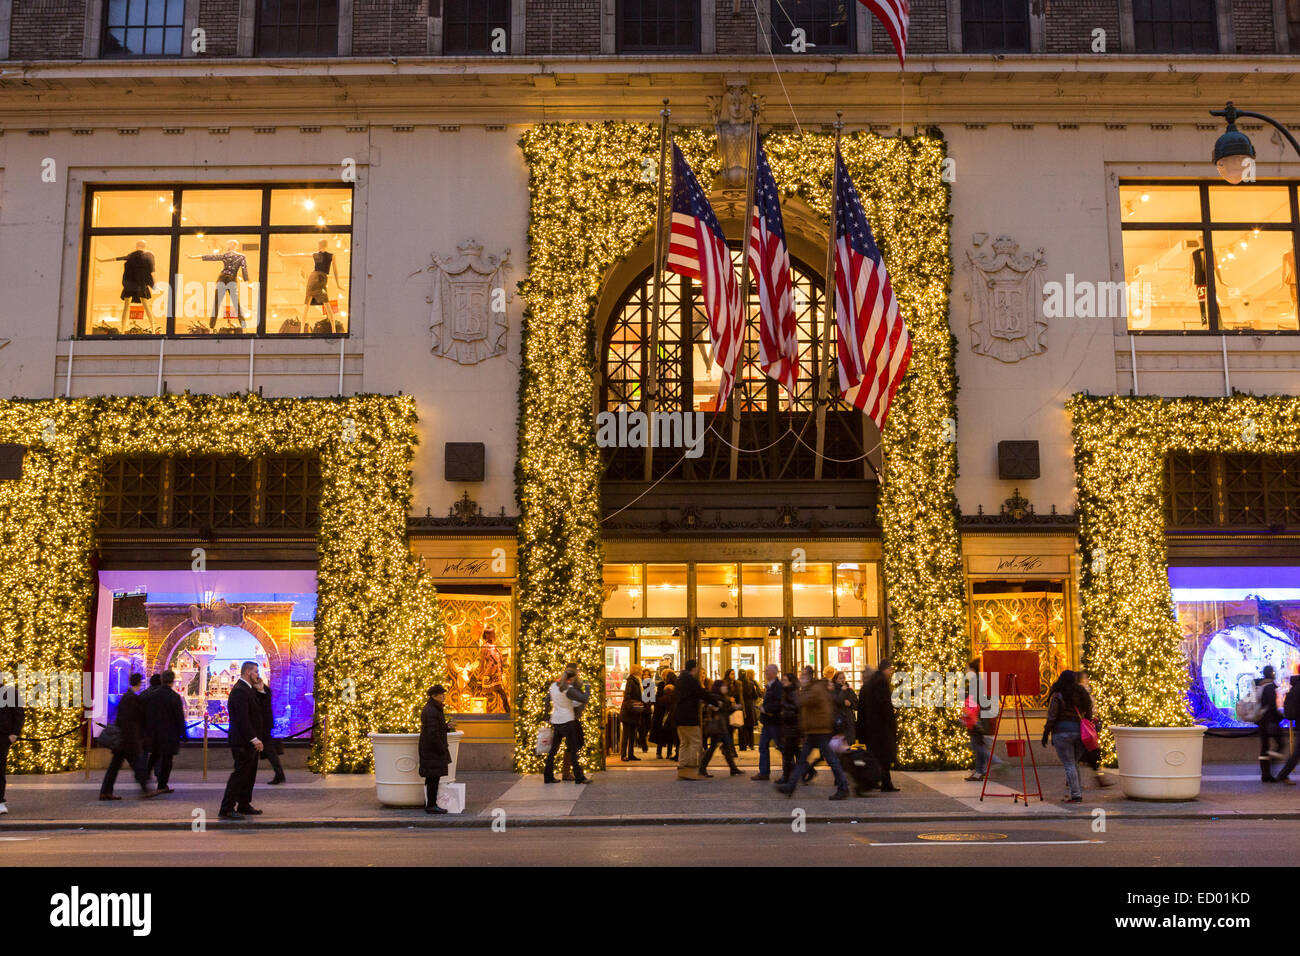 Lord & Taylor 2021 Christmas Windows Photos Tourists View The Christmas Window Holiday Display At Lord Taylor Department Store Along 5th Avenue December 16 2014 In New York City Ny Stock Photo Alamy